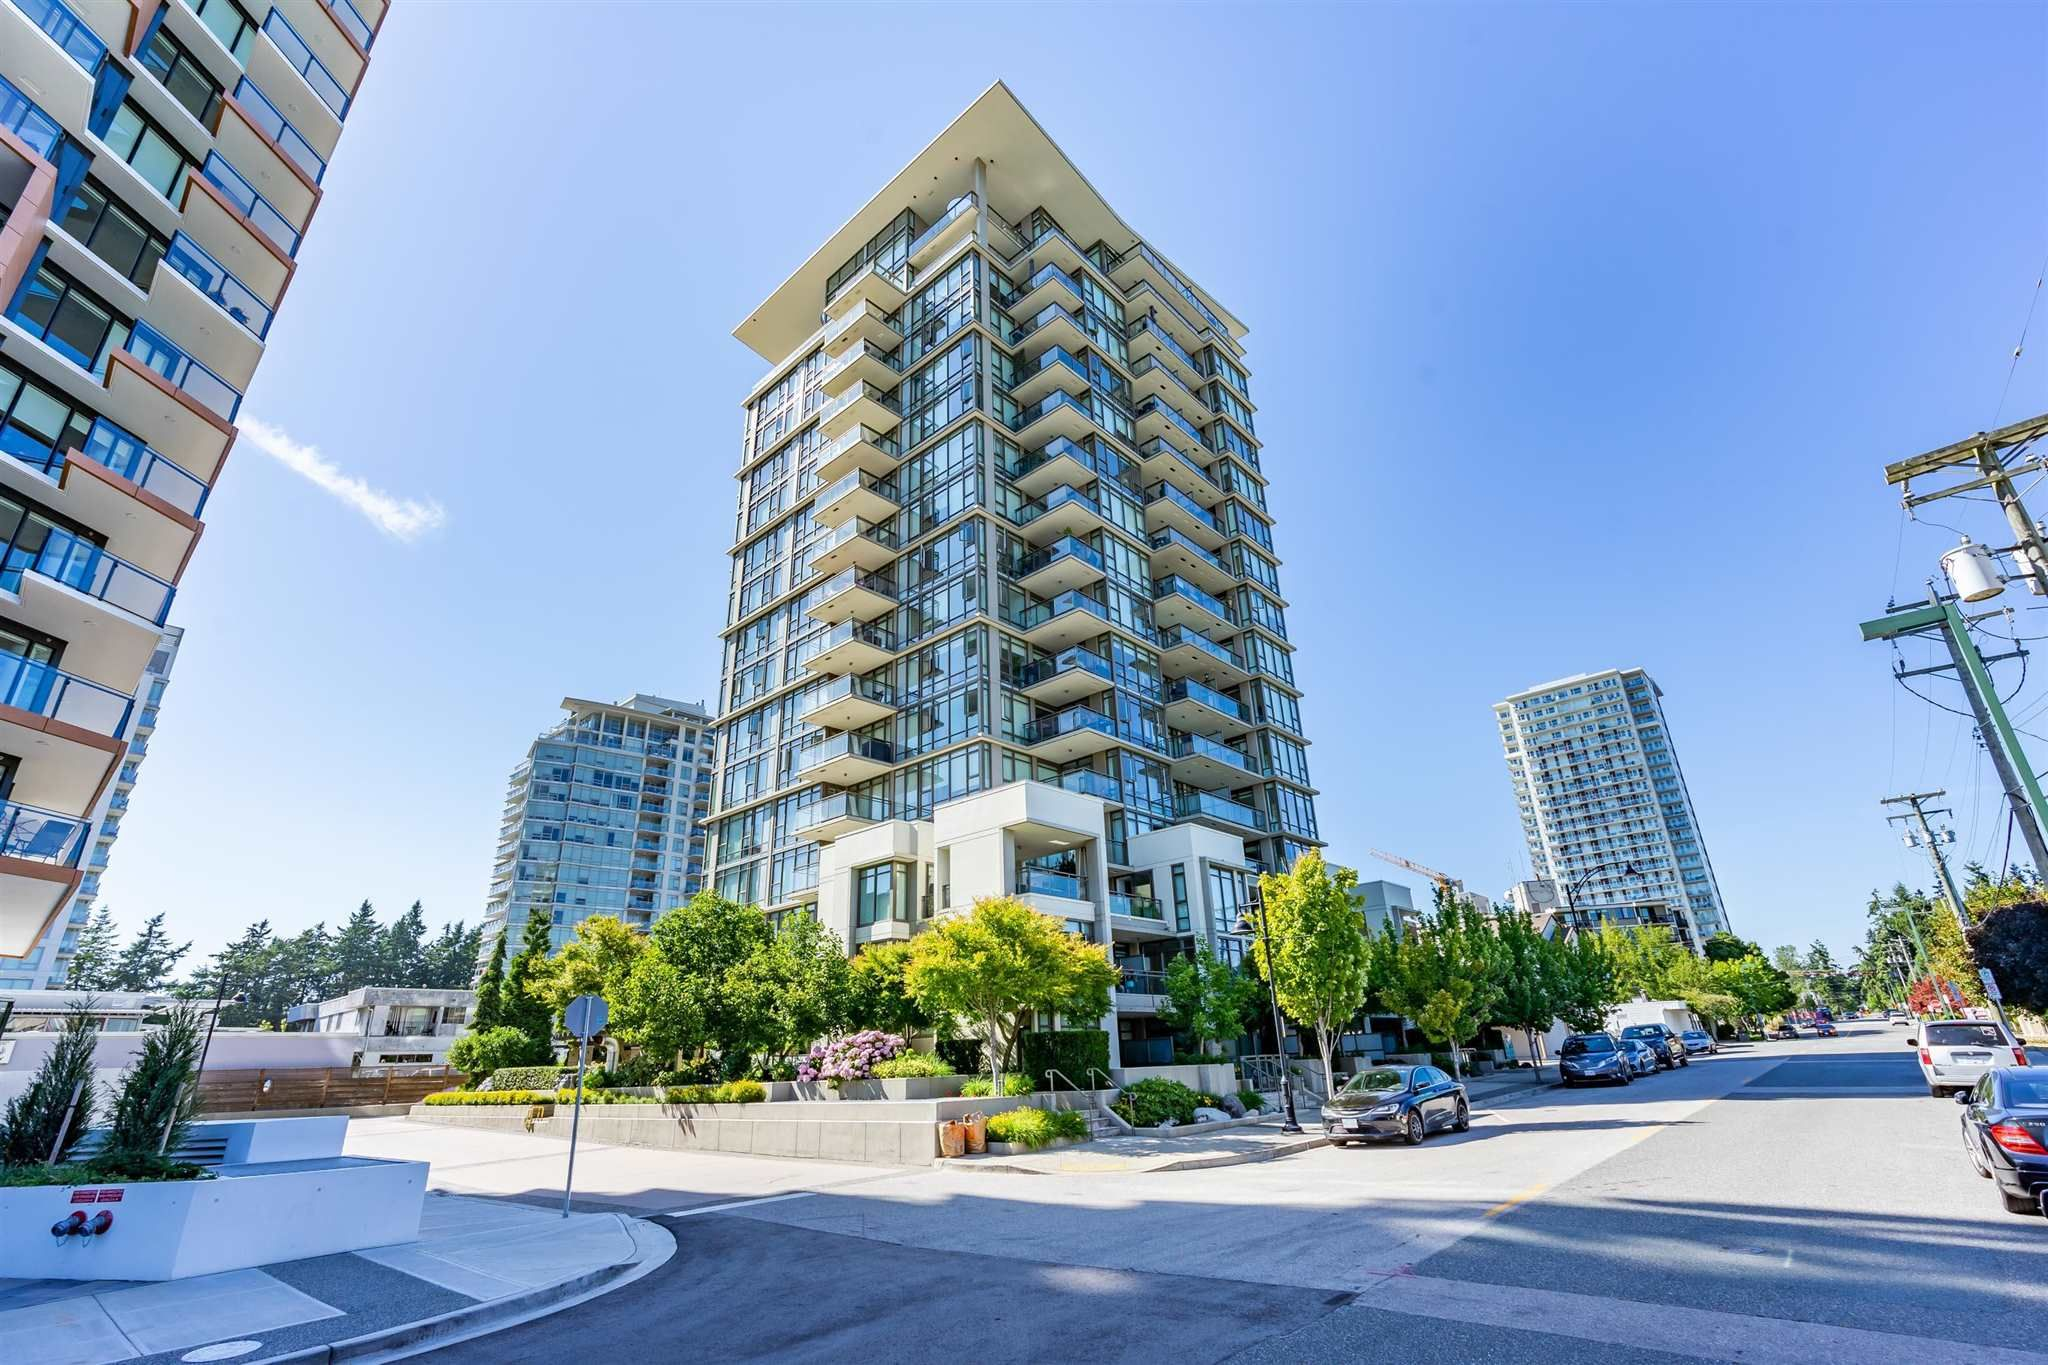 Main Photo: 203 1455 GEORGE STREET: White Rock Condo for sale (South Surrey White Rock)  : MLS®# R2599469